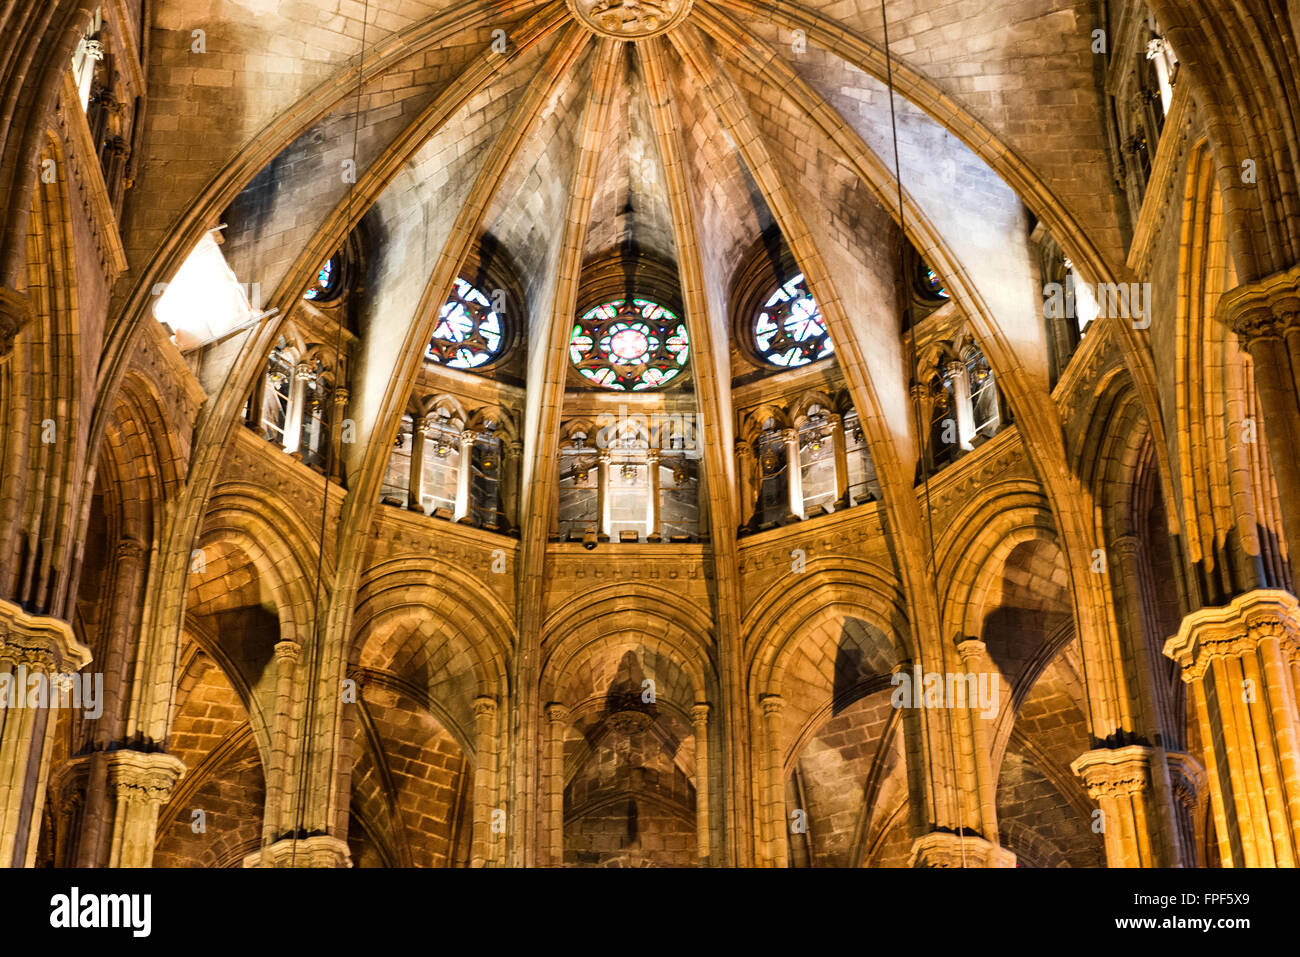 Interior windows architectural - Architectural Detail Of Apse In Interior Of Barcelona Cathedral With Round Stained Glass Windows Barcelona Spain